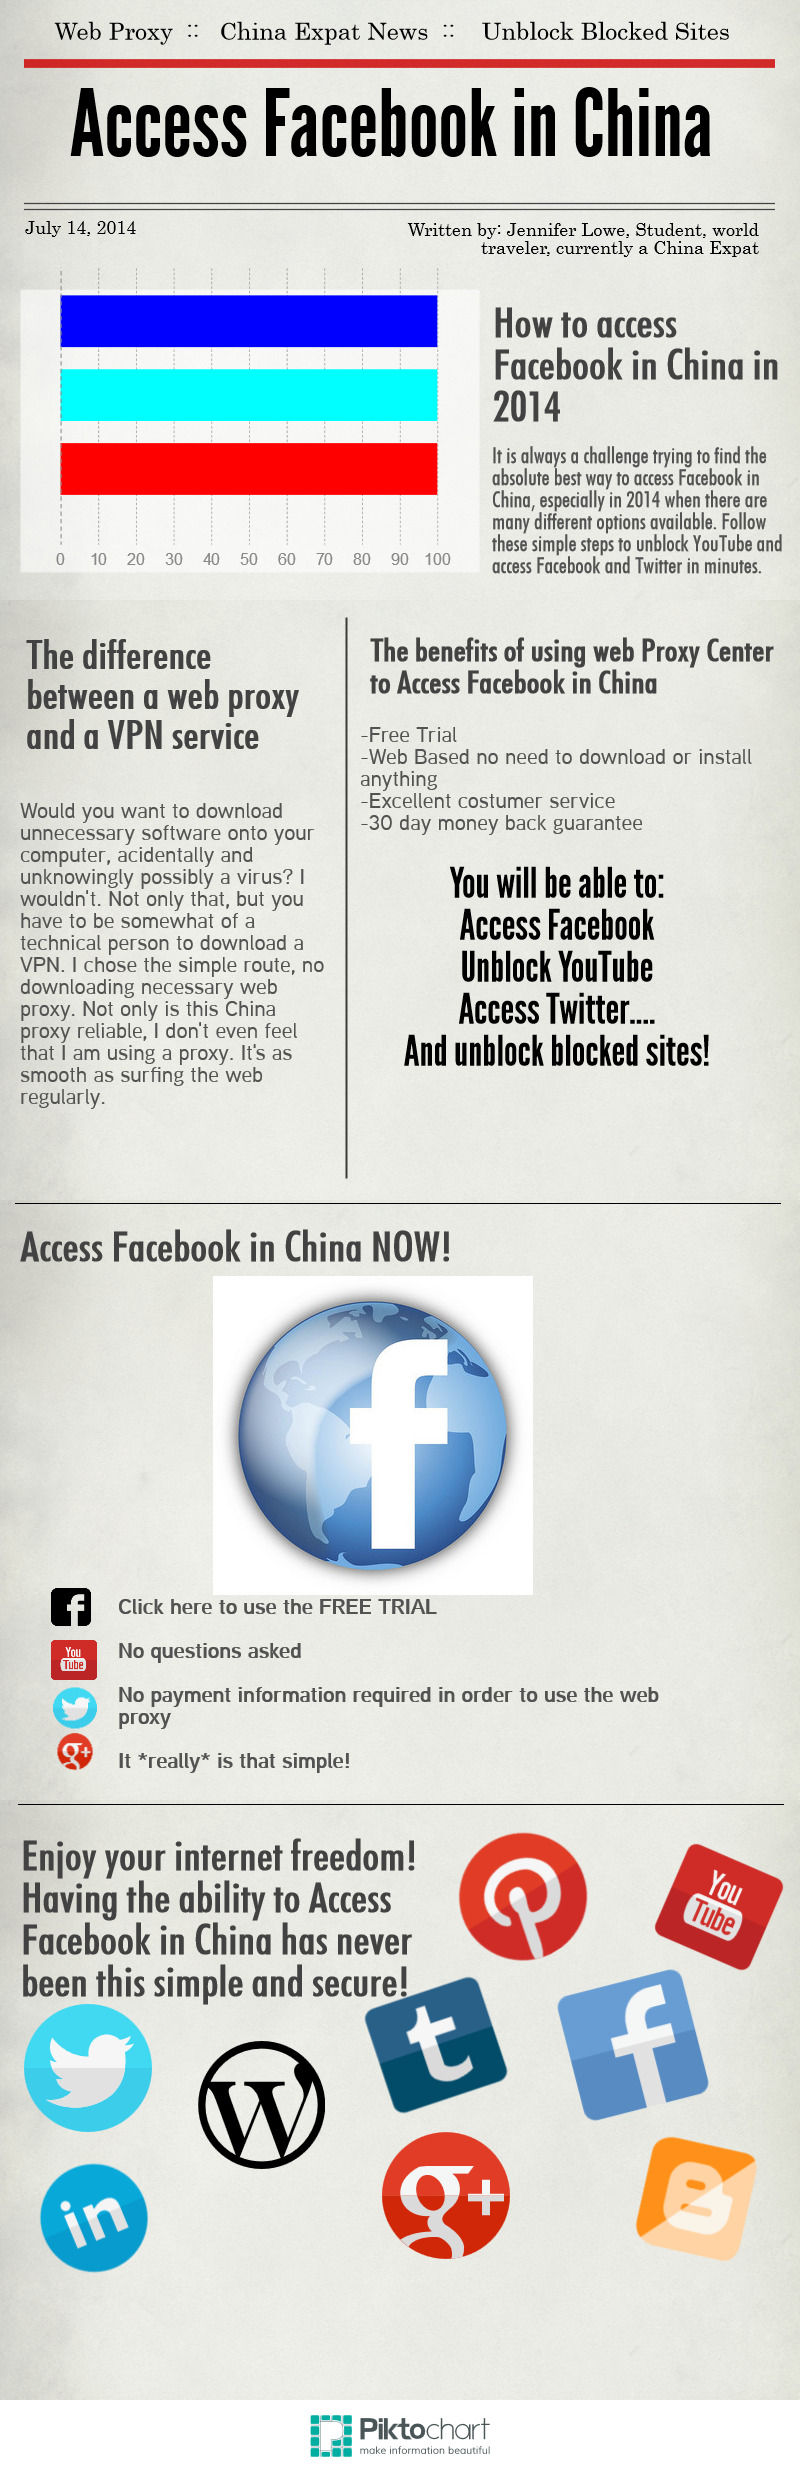 Access Facebook in China Web Proxy | Facebook in China Proxy | China